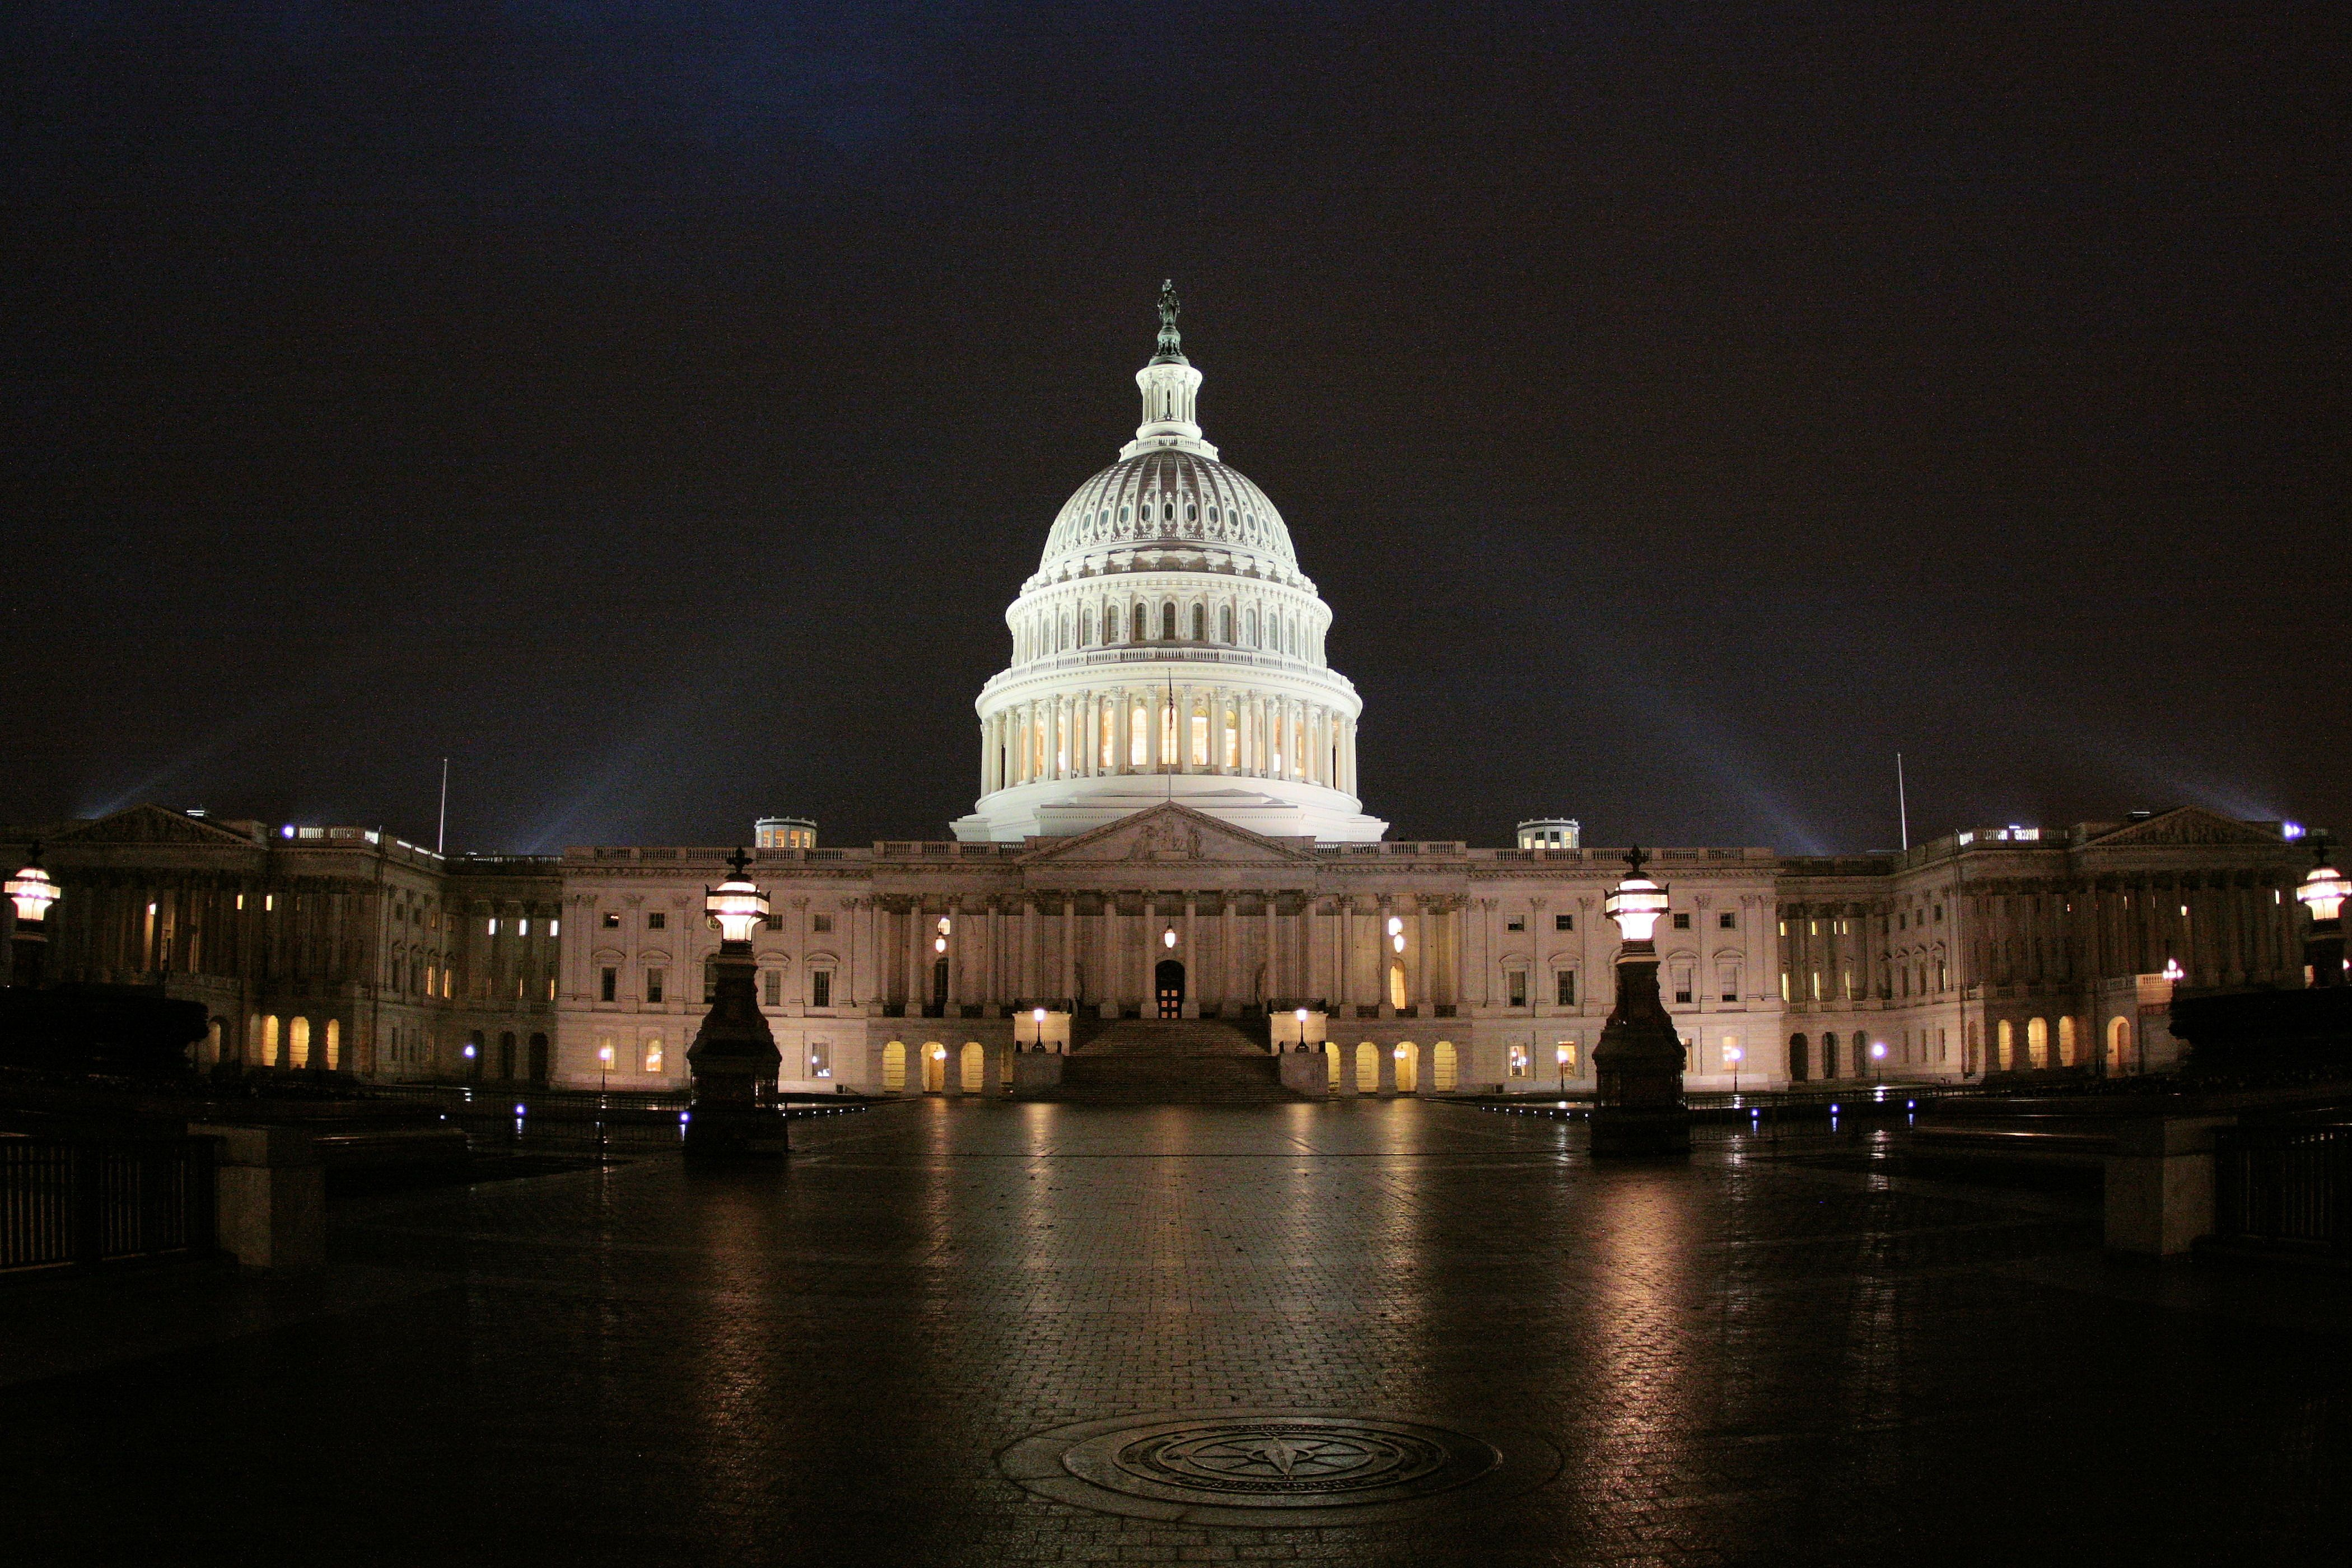 The dome of the United States Capitol lit at night in Washington, DC.